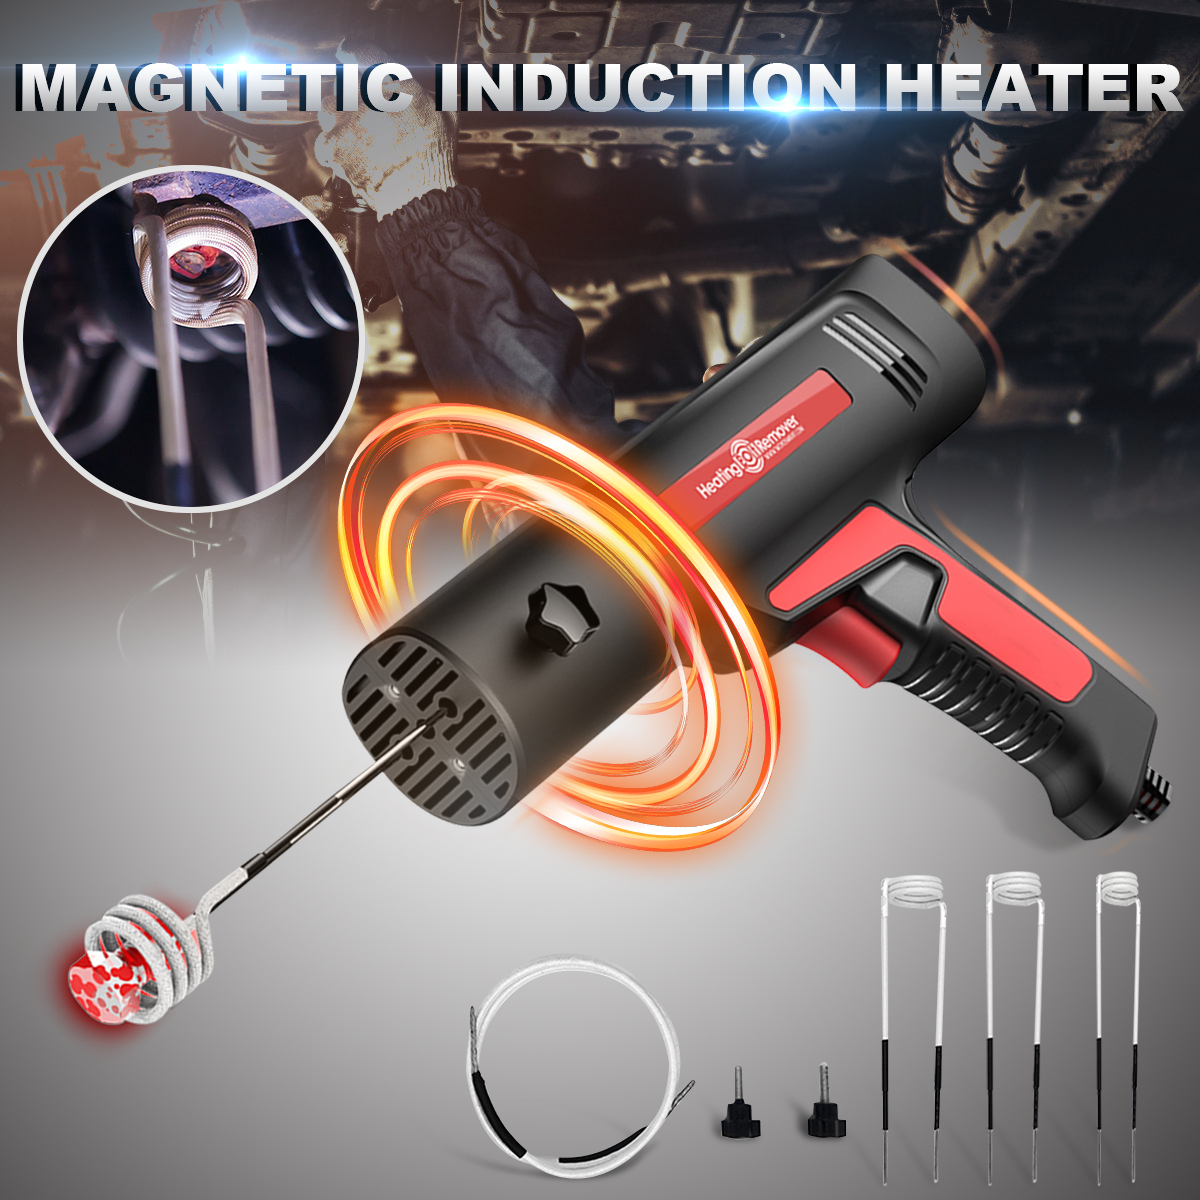 Magnetic Induction Heater Kit For Automotive Flameless Heat 12V 110 220V Repair Car Heating Bolt Remover